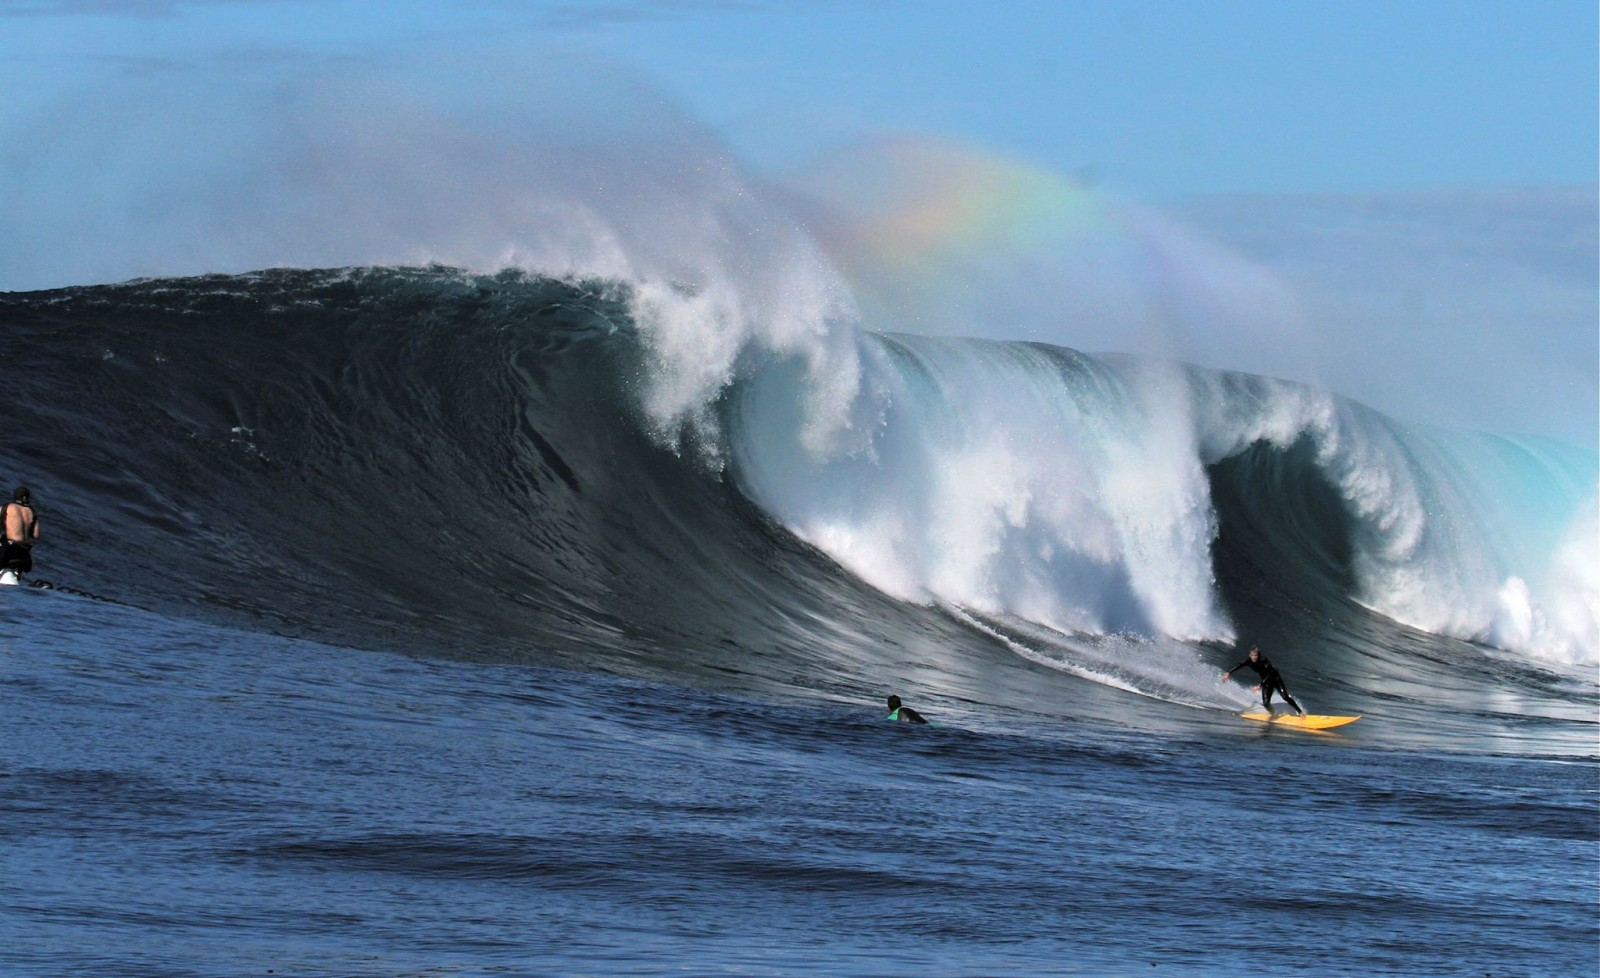 Bredesen has been putting his time in at Todos Santos and Mavericks this past season. photo courtesy of Scotty Bredesen